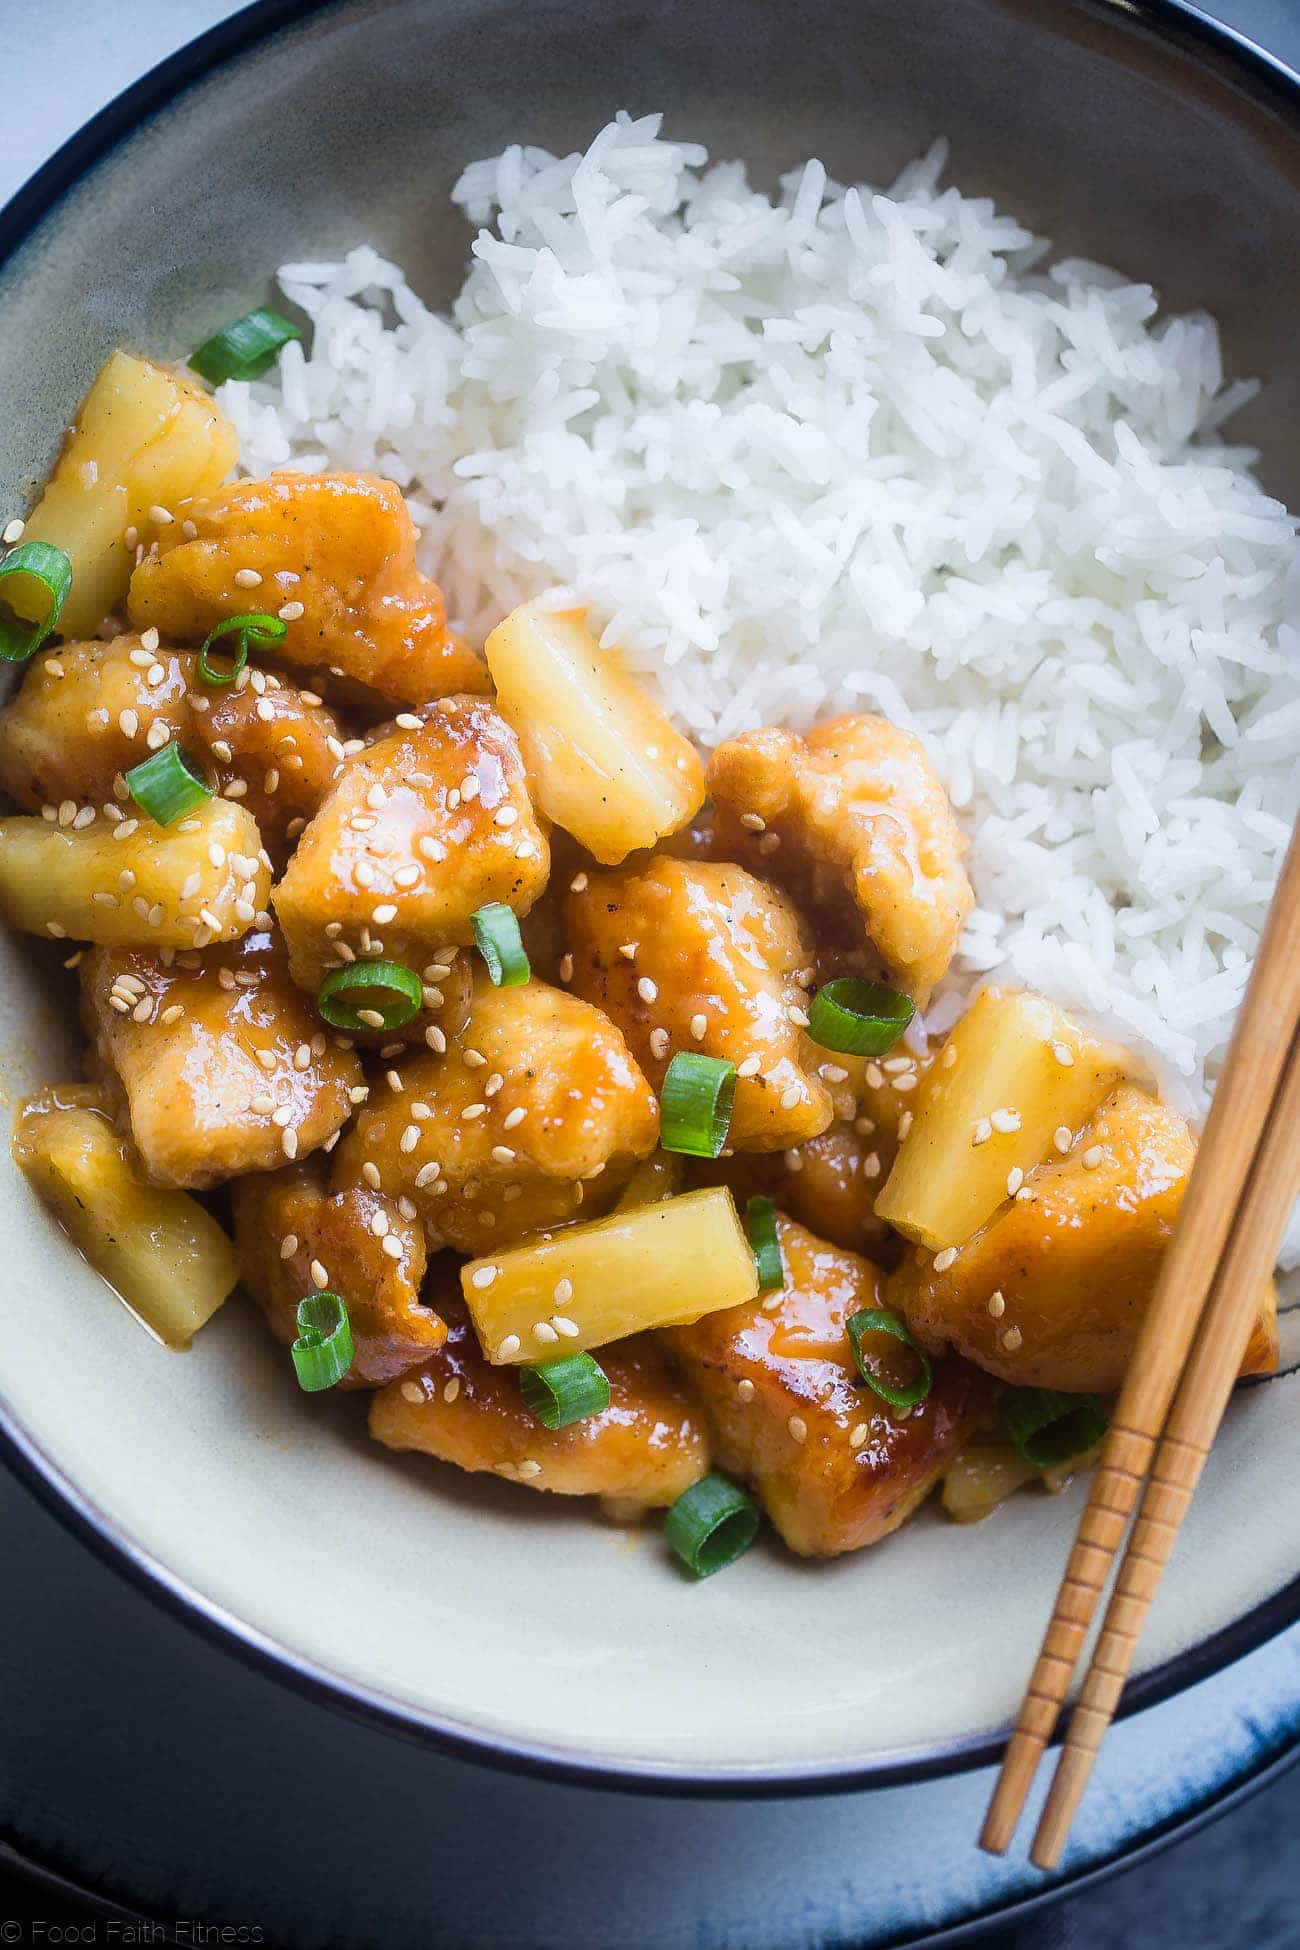 Whole30 Firecracker Pineapple Chicken - This healthy, sweet and spicy chicken is way better than takeout! A gluten free, paleo and whole30 compliant dinner that is always a crowd pleaser!   #Foodfaithfitness   #Paleo #Whole30 #Glutenfree #Healthy